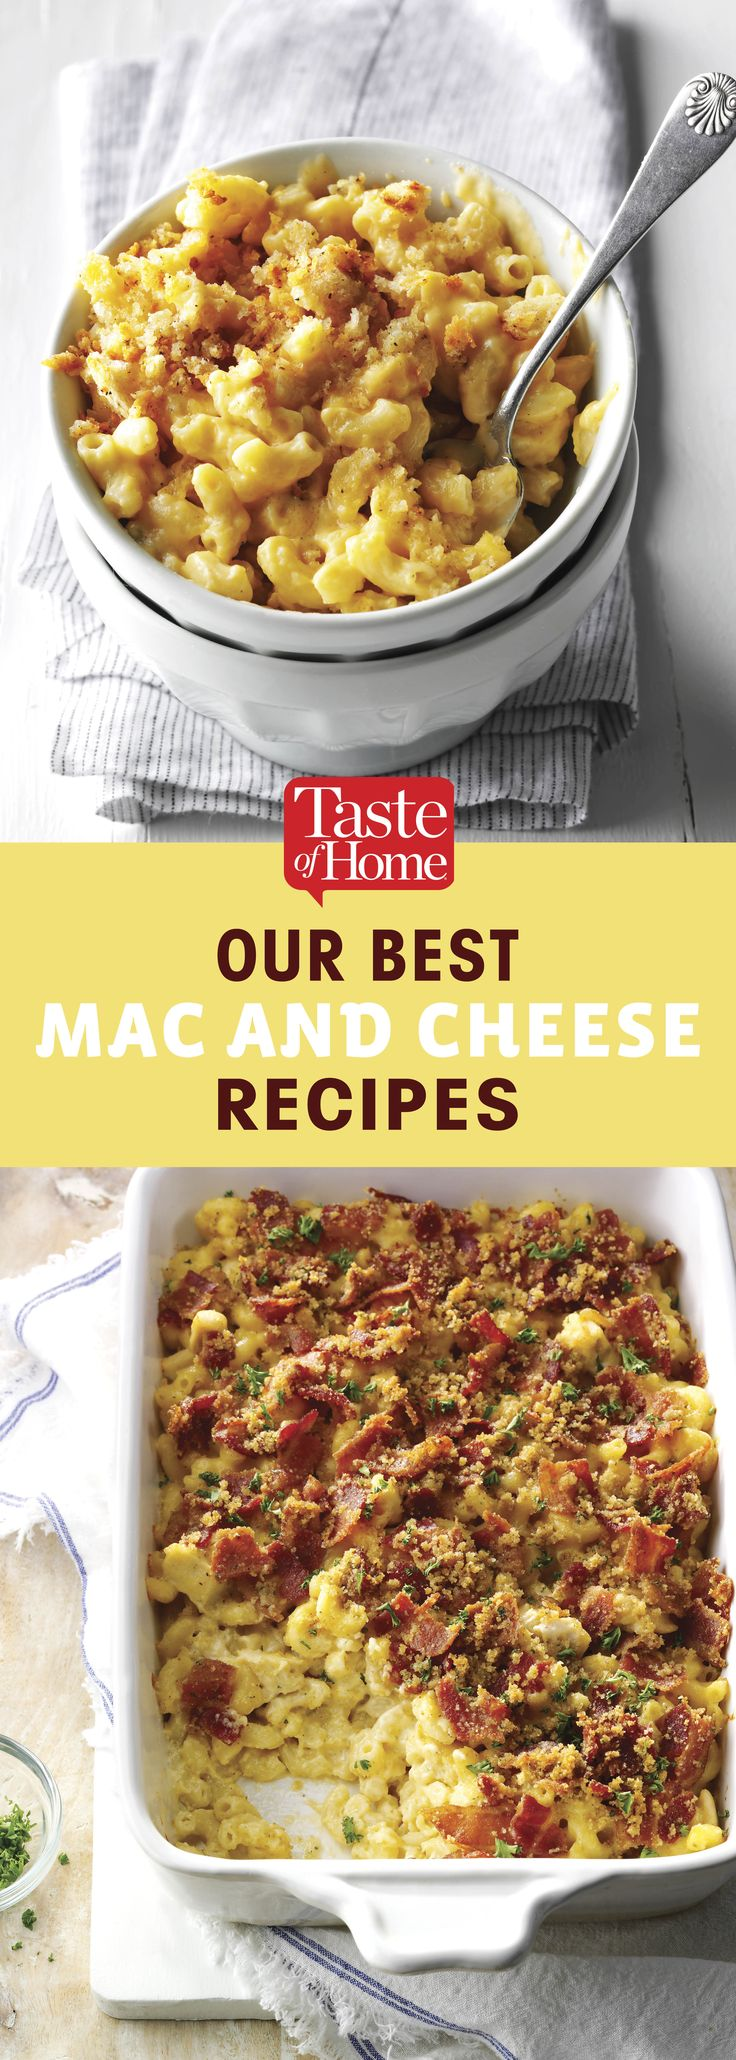 Our Best Mac and Cheese Recipes